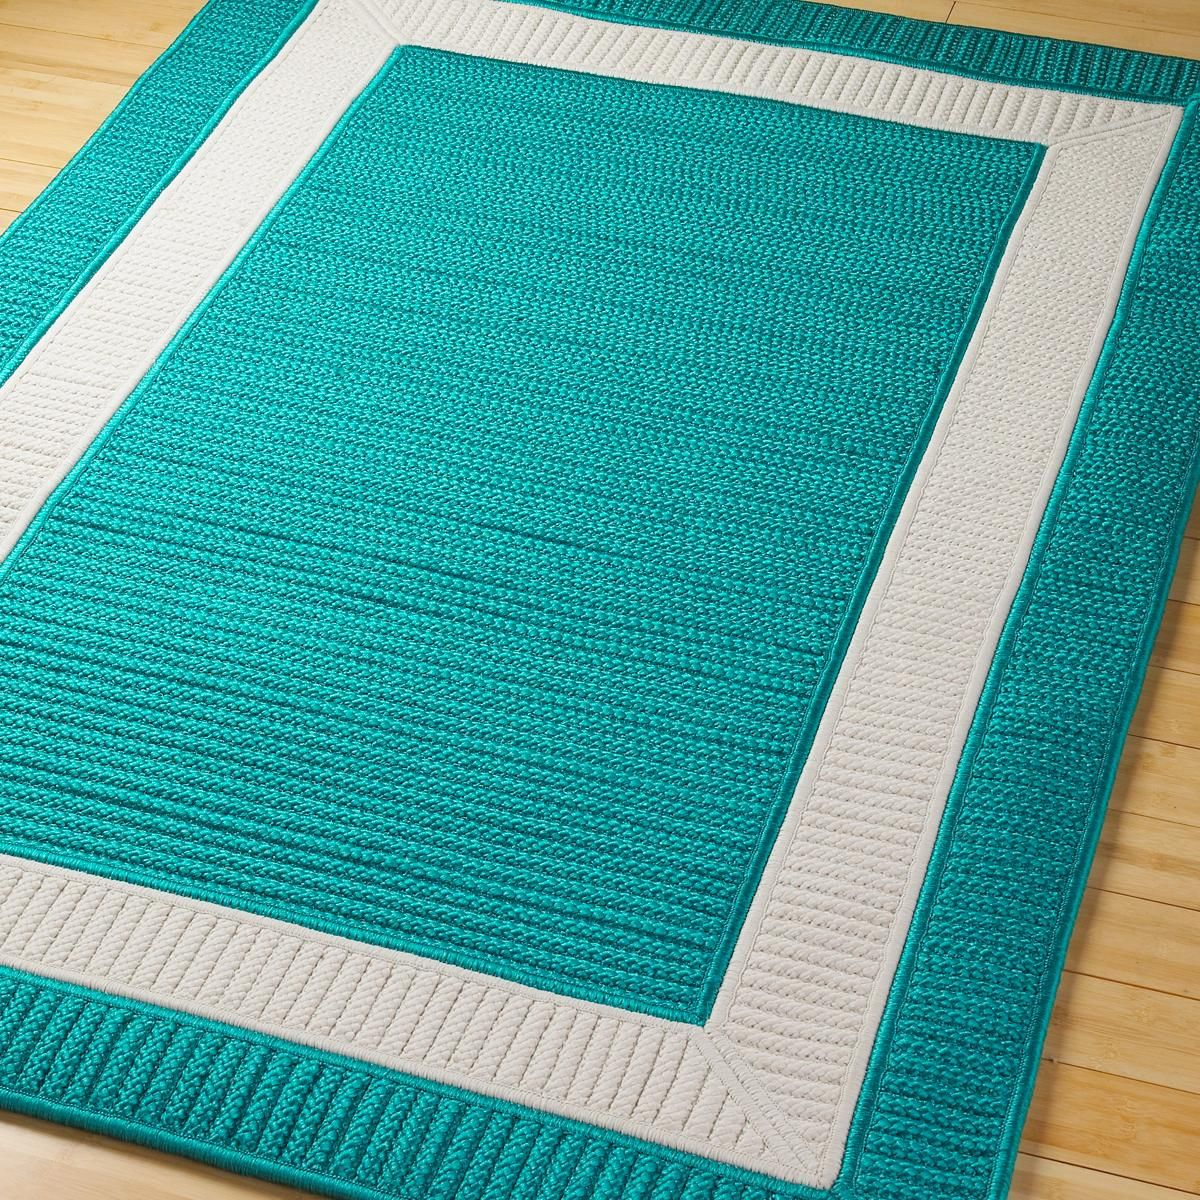 braided kitchen rugs island top border indoor outdoor rug turquoise teal and aqua